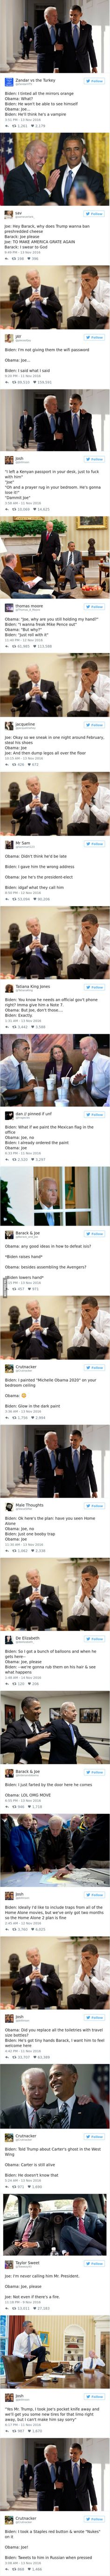 Hilarious Imaginary  Conversations Between Obama And Biden Are The Best Medicine After This Election